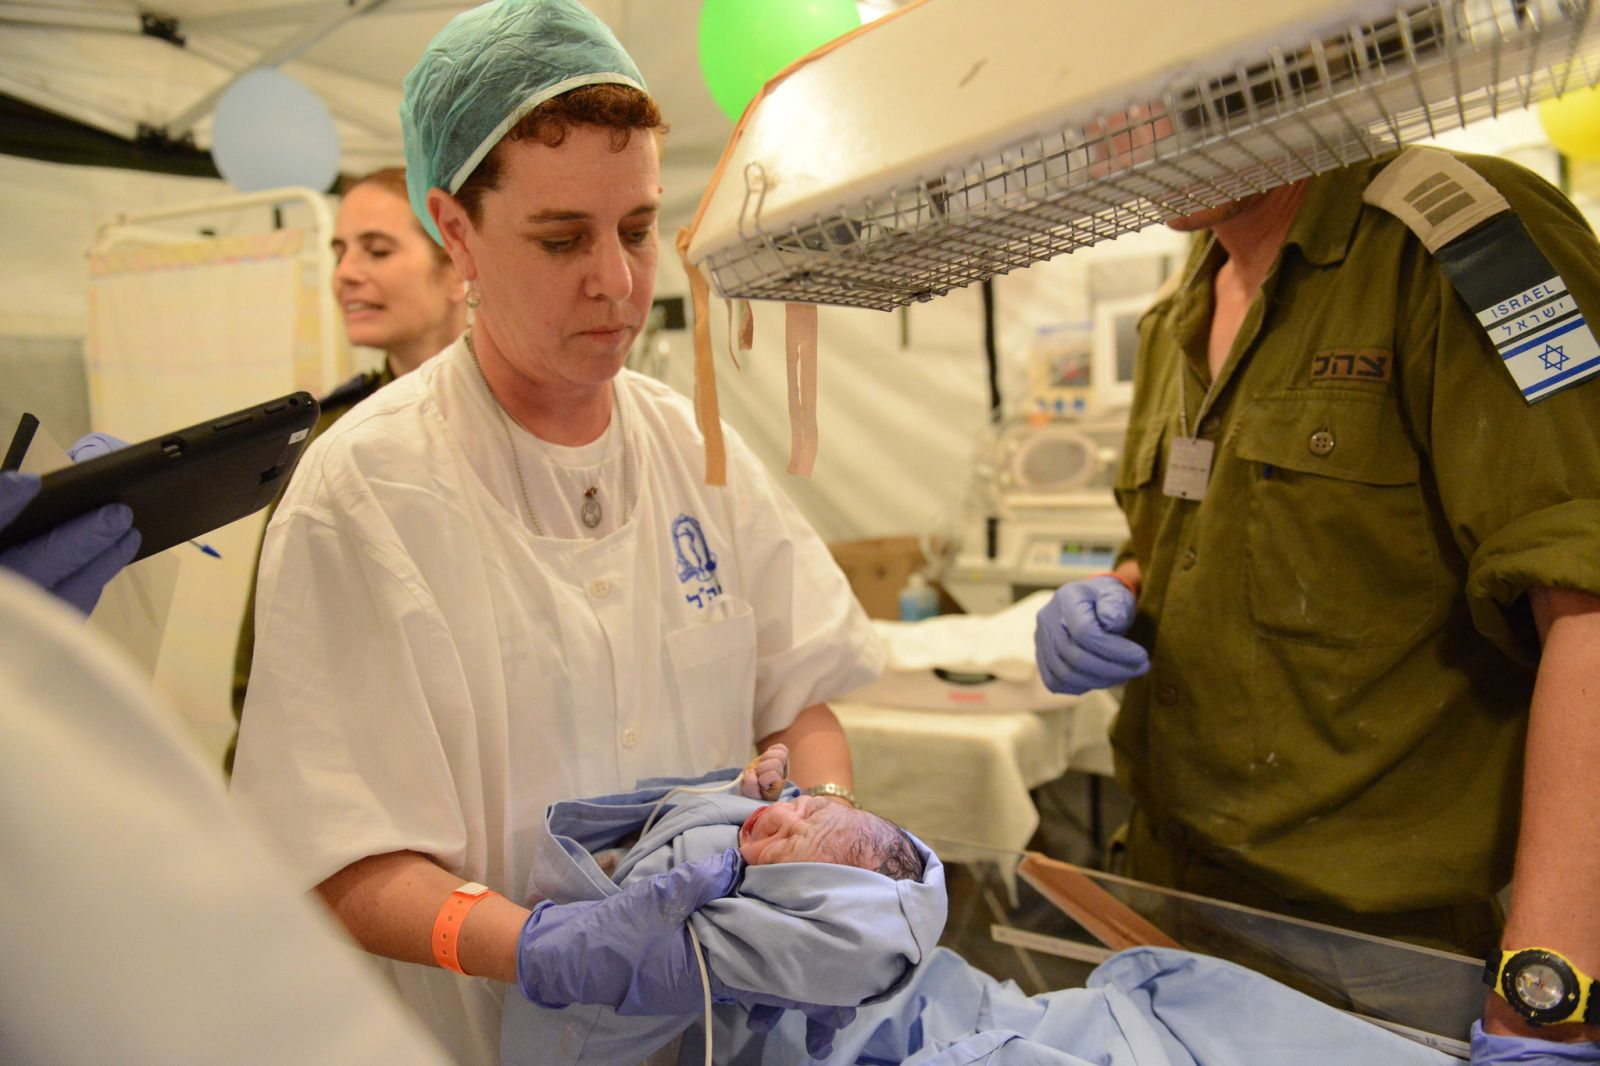 A baby is born at the IDF field hospital in Nepal. Photo courtesy of the IDF